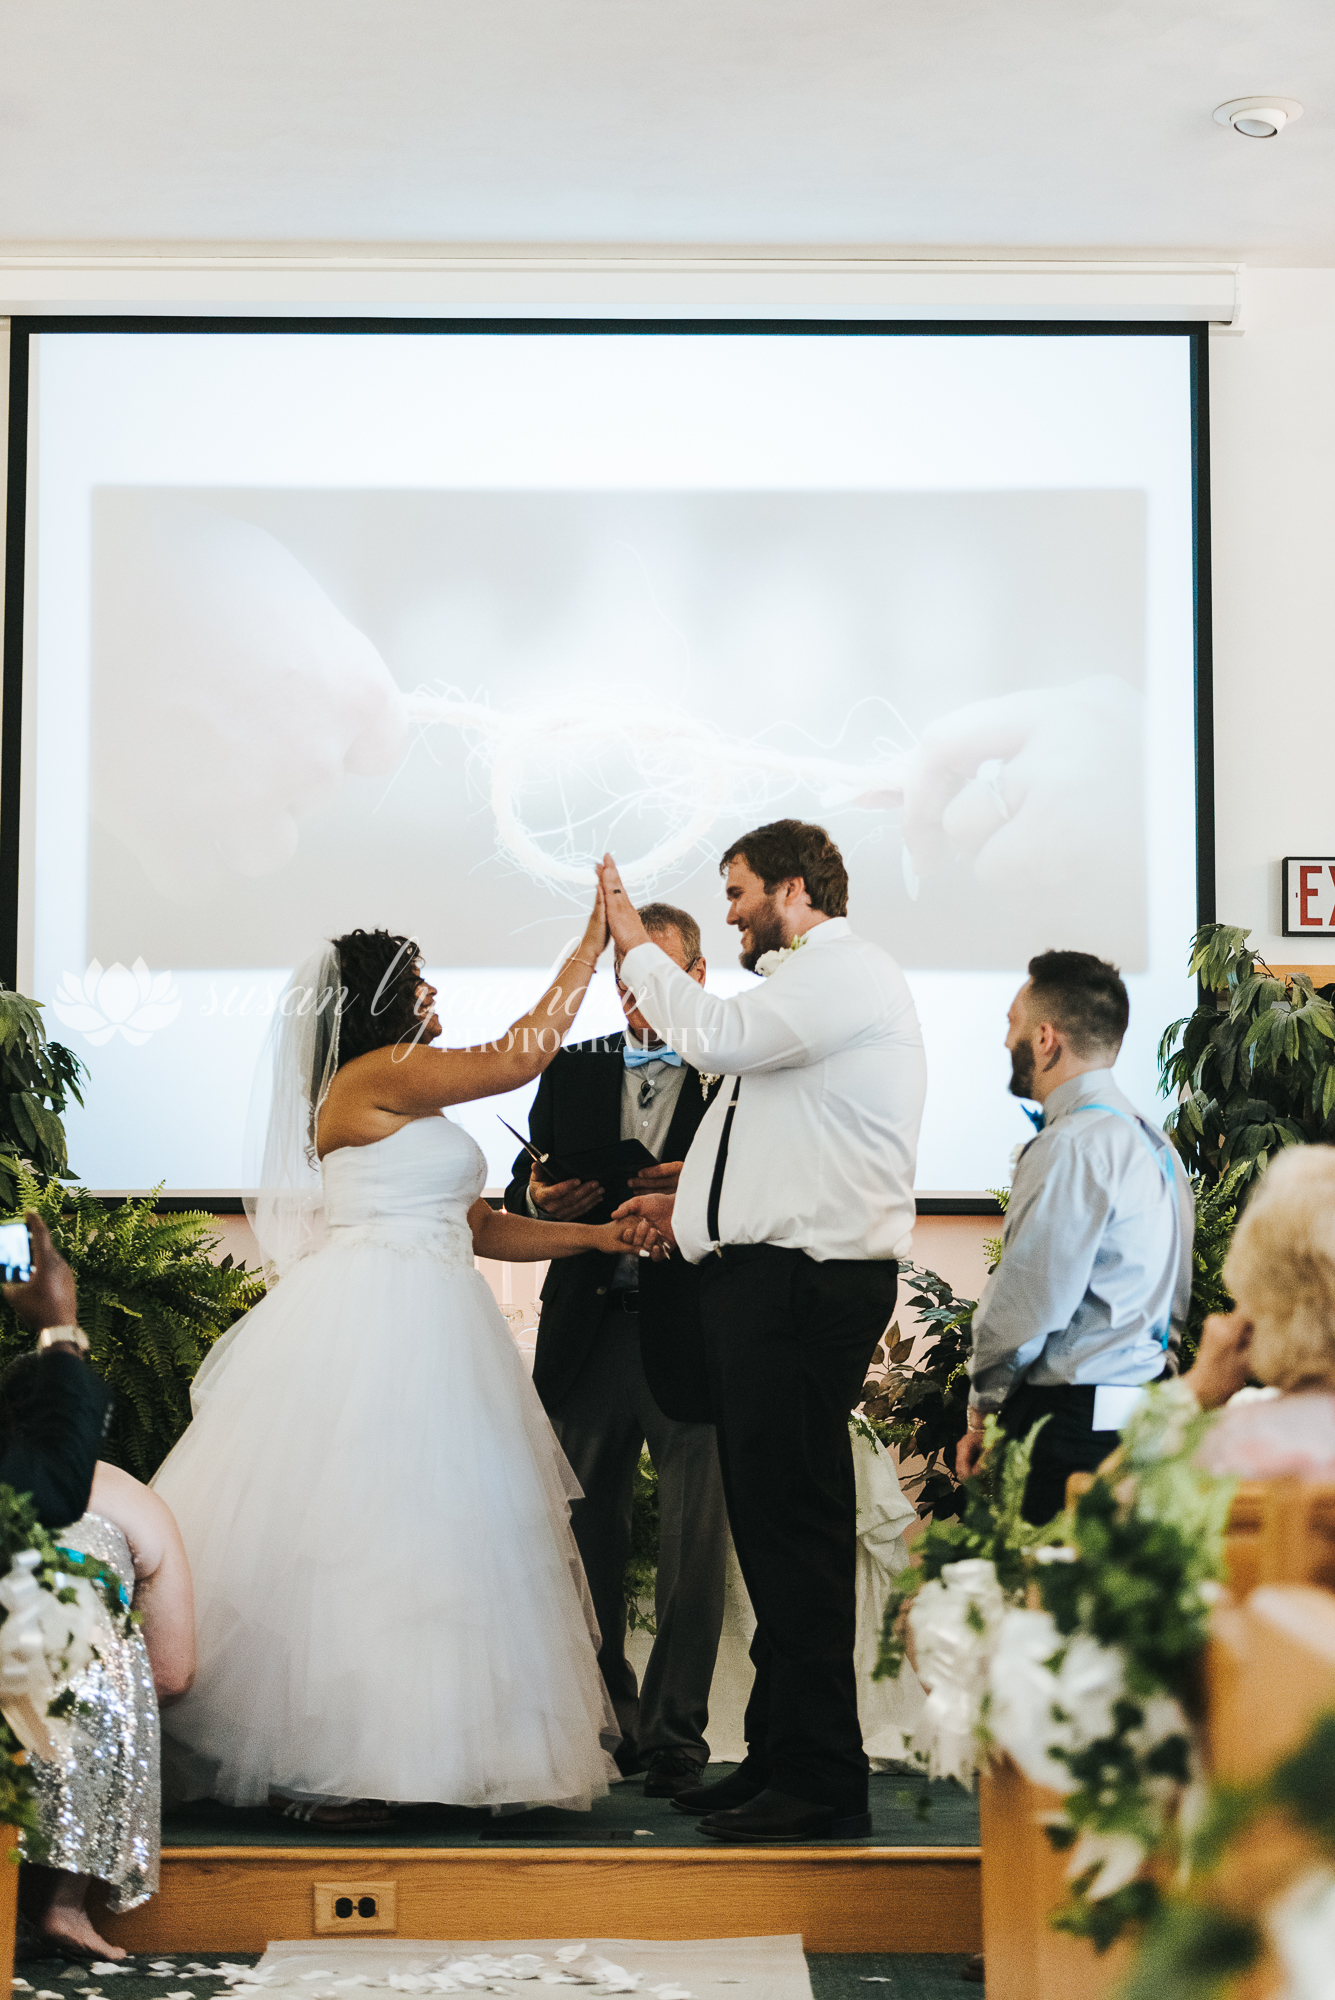 Katelyn and Wes Wedding Photos 07-13-2019 SLY Photography-77.jpg